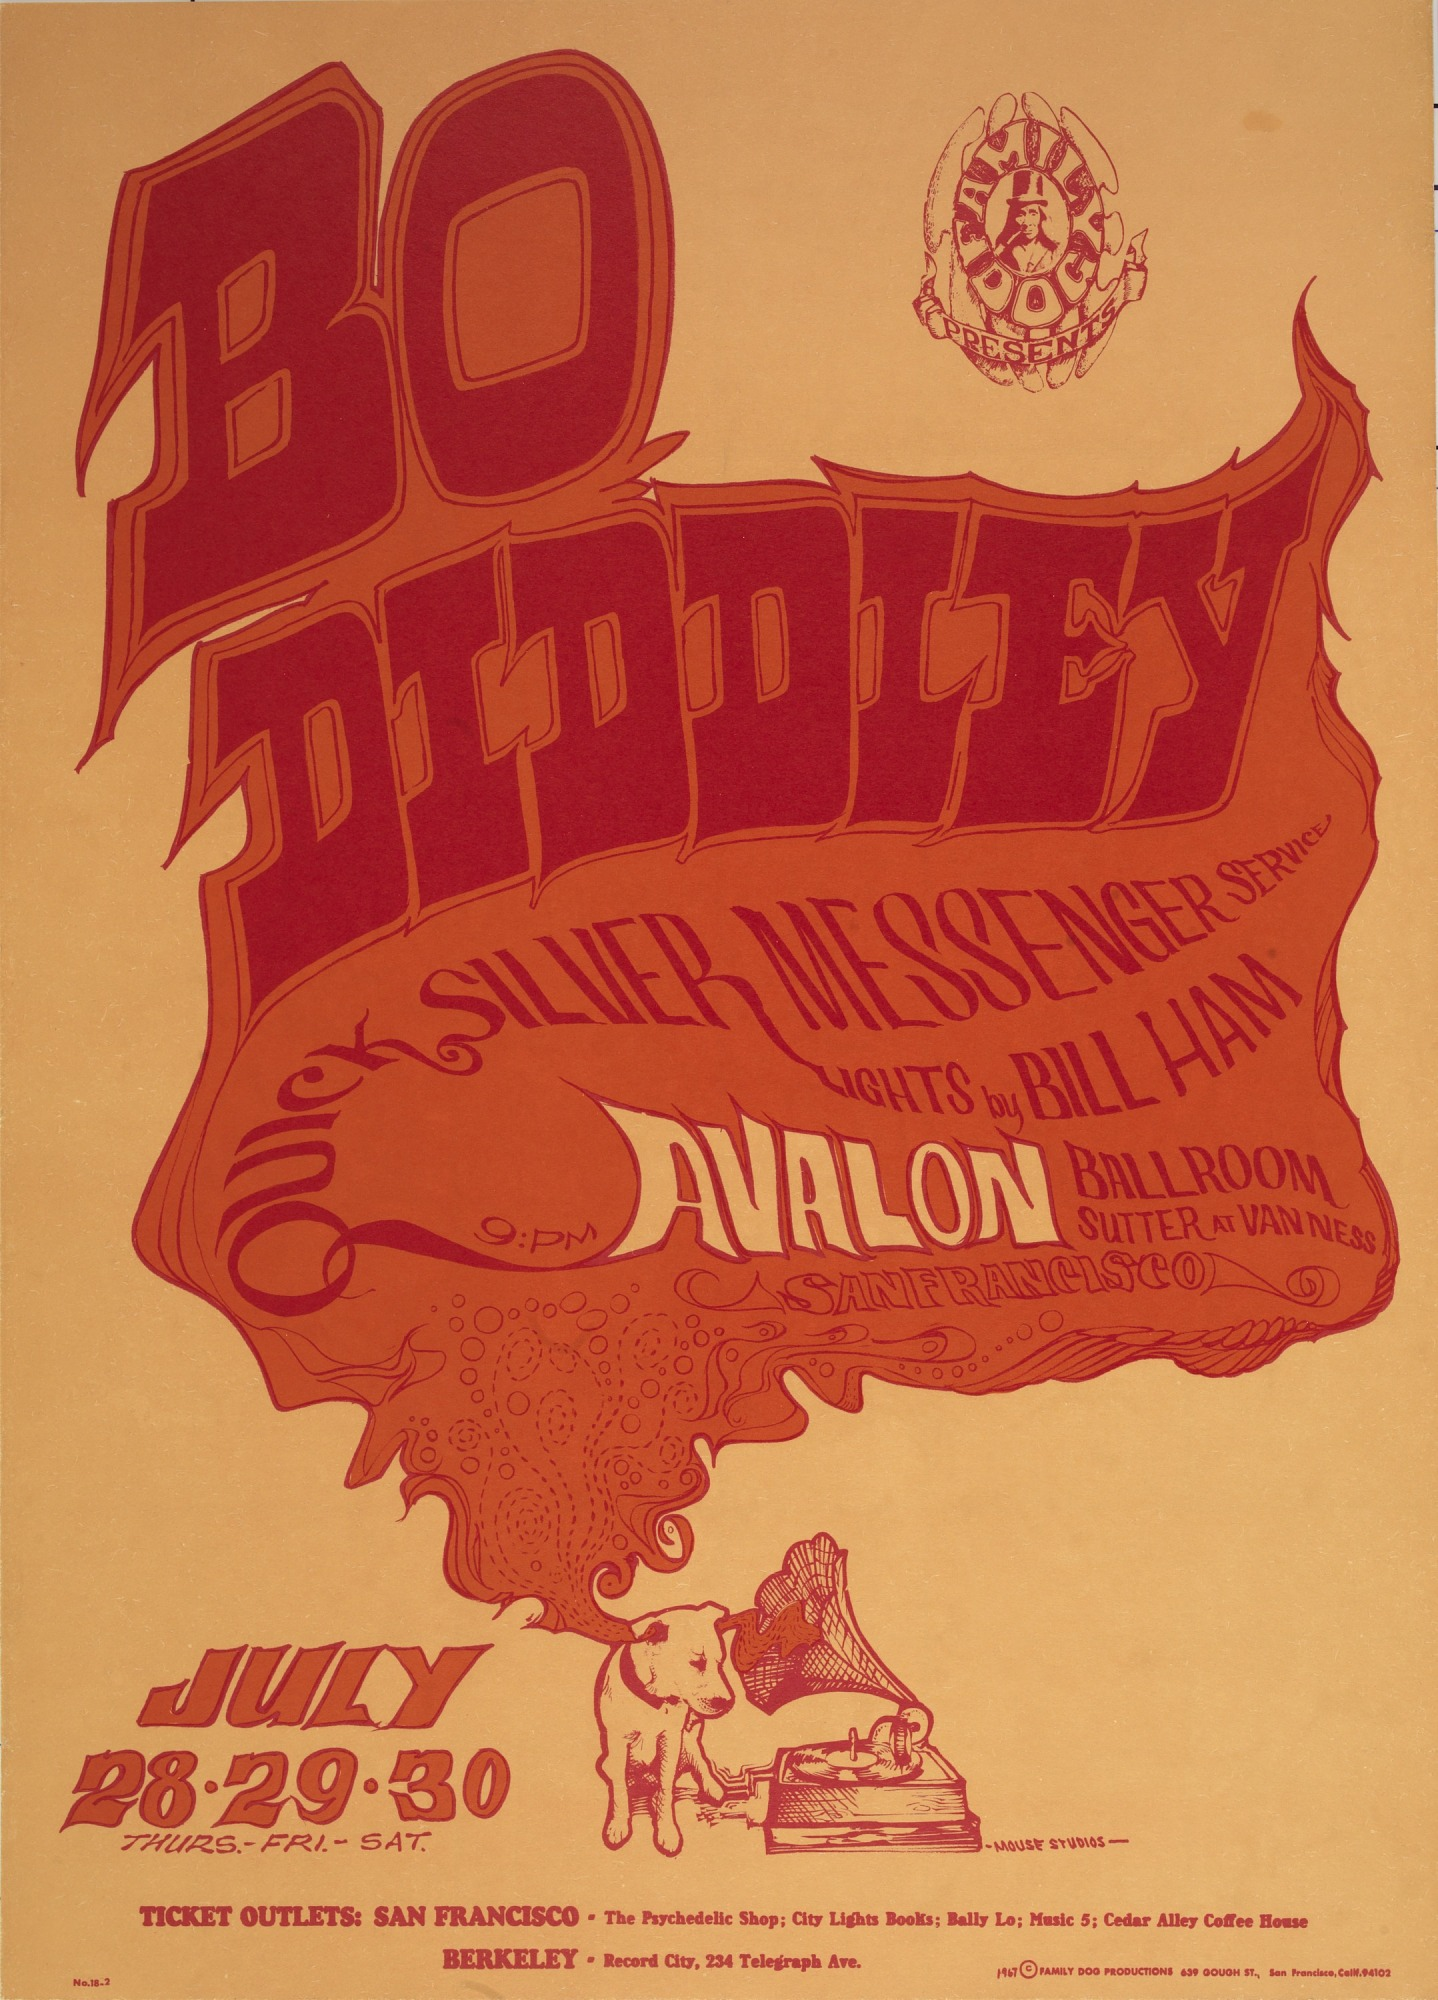 Image for Voice of Music (Bo Diddley, Quicksilver Messenger Service...Avalon Ballroom, San Francisco, California 7/28/67-7/30/67)